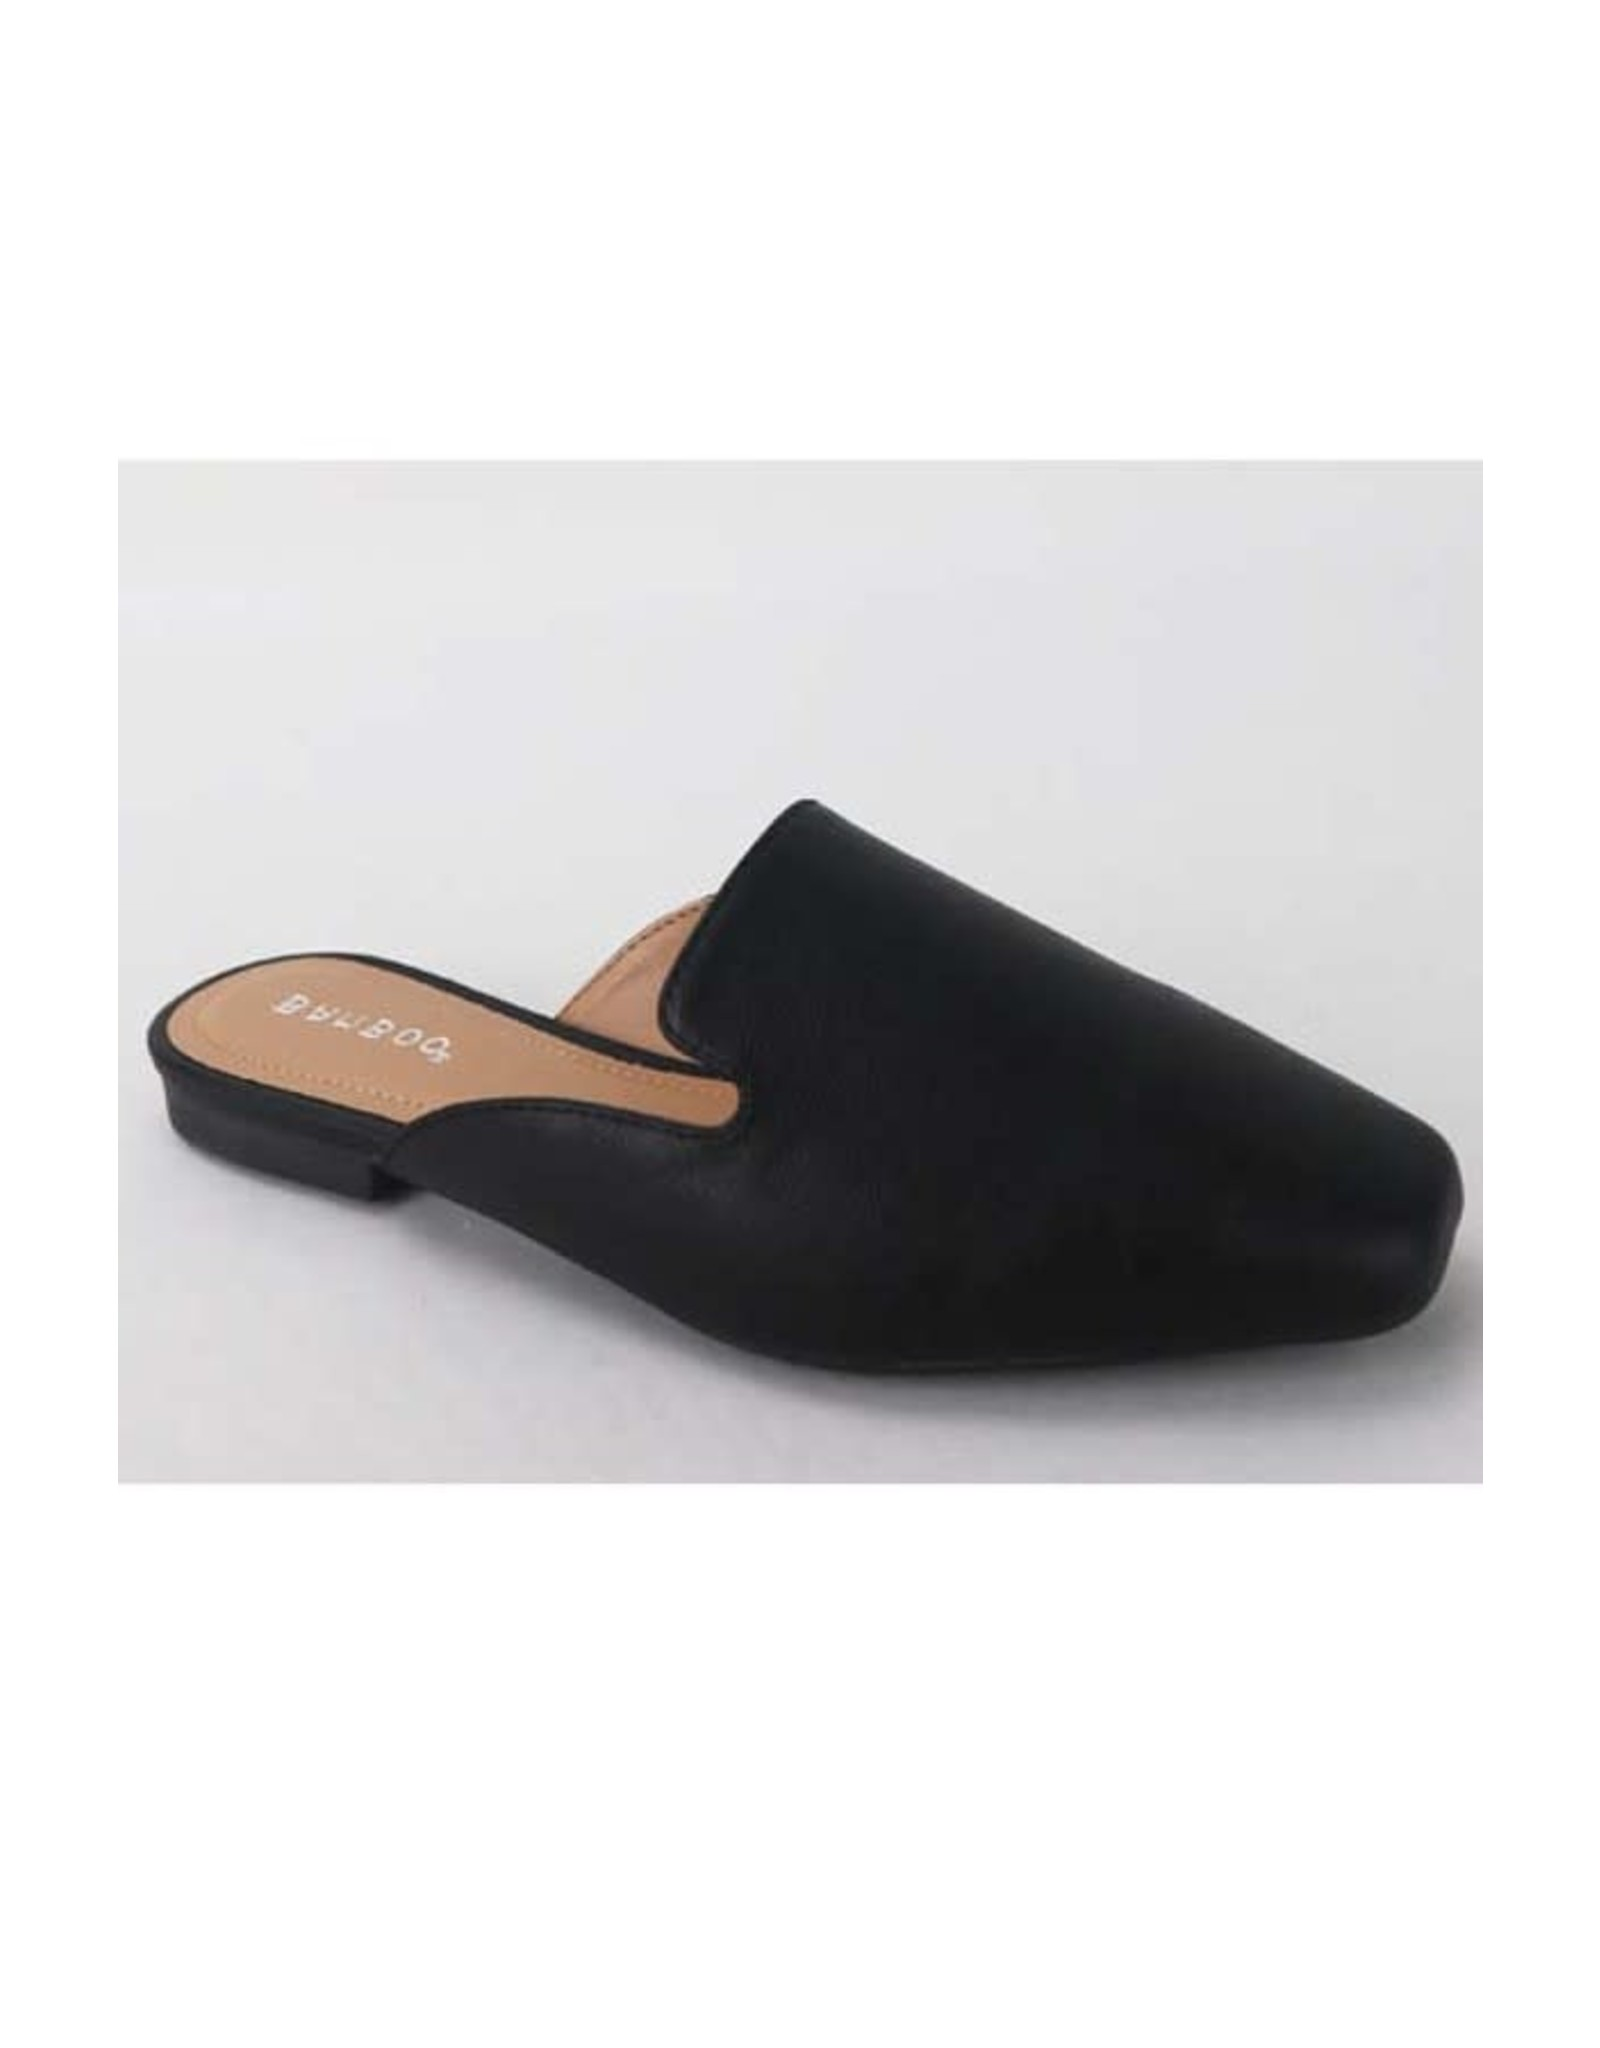 Sweep - Faux leather flat mules (black)